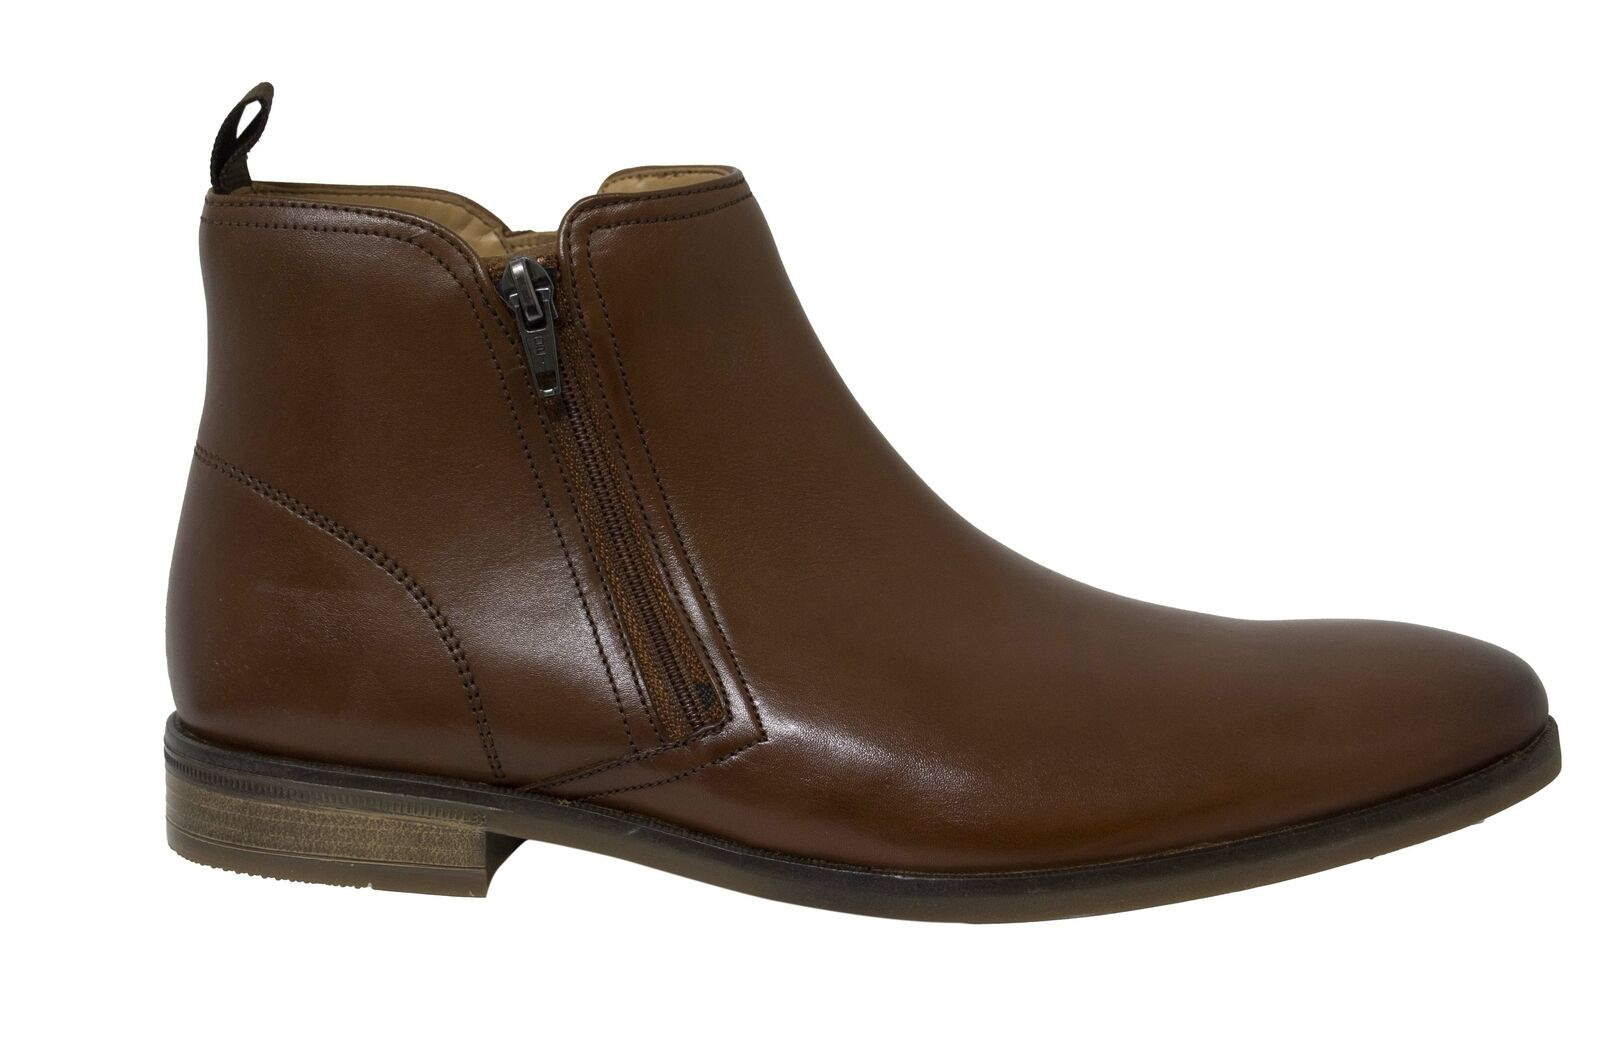 Clarks Stanford Zip Tan Brown Leather Mens Chelsea Boots 261475687